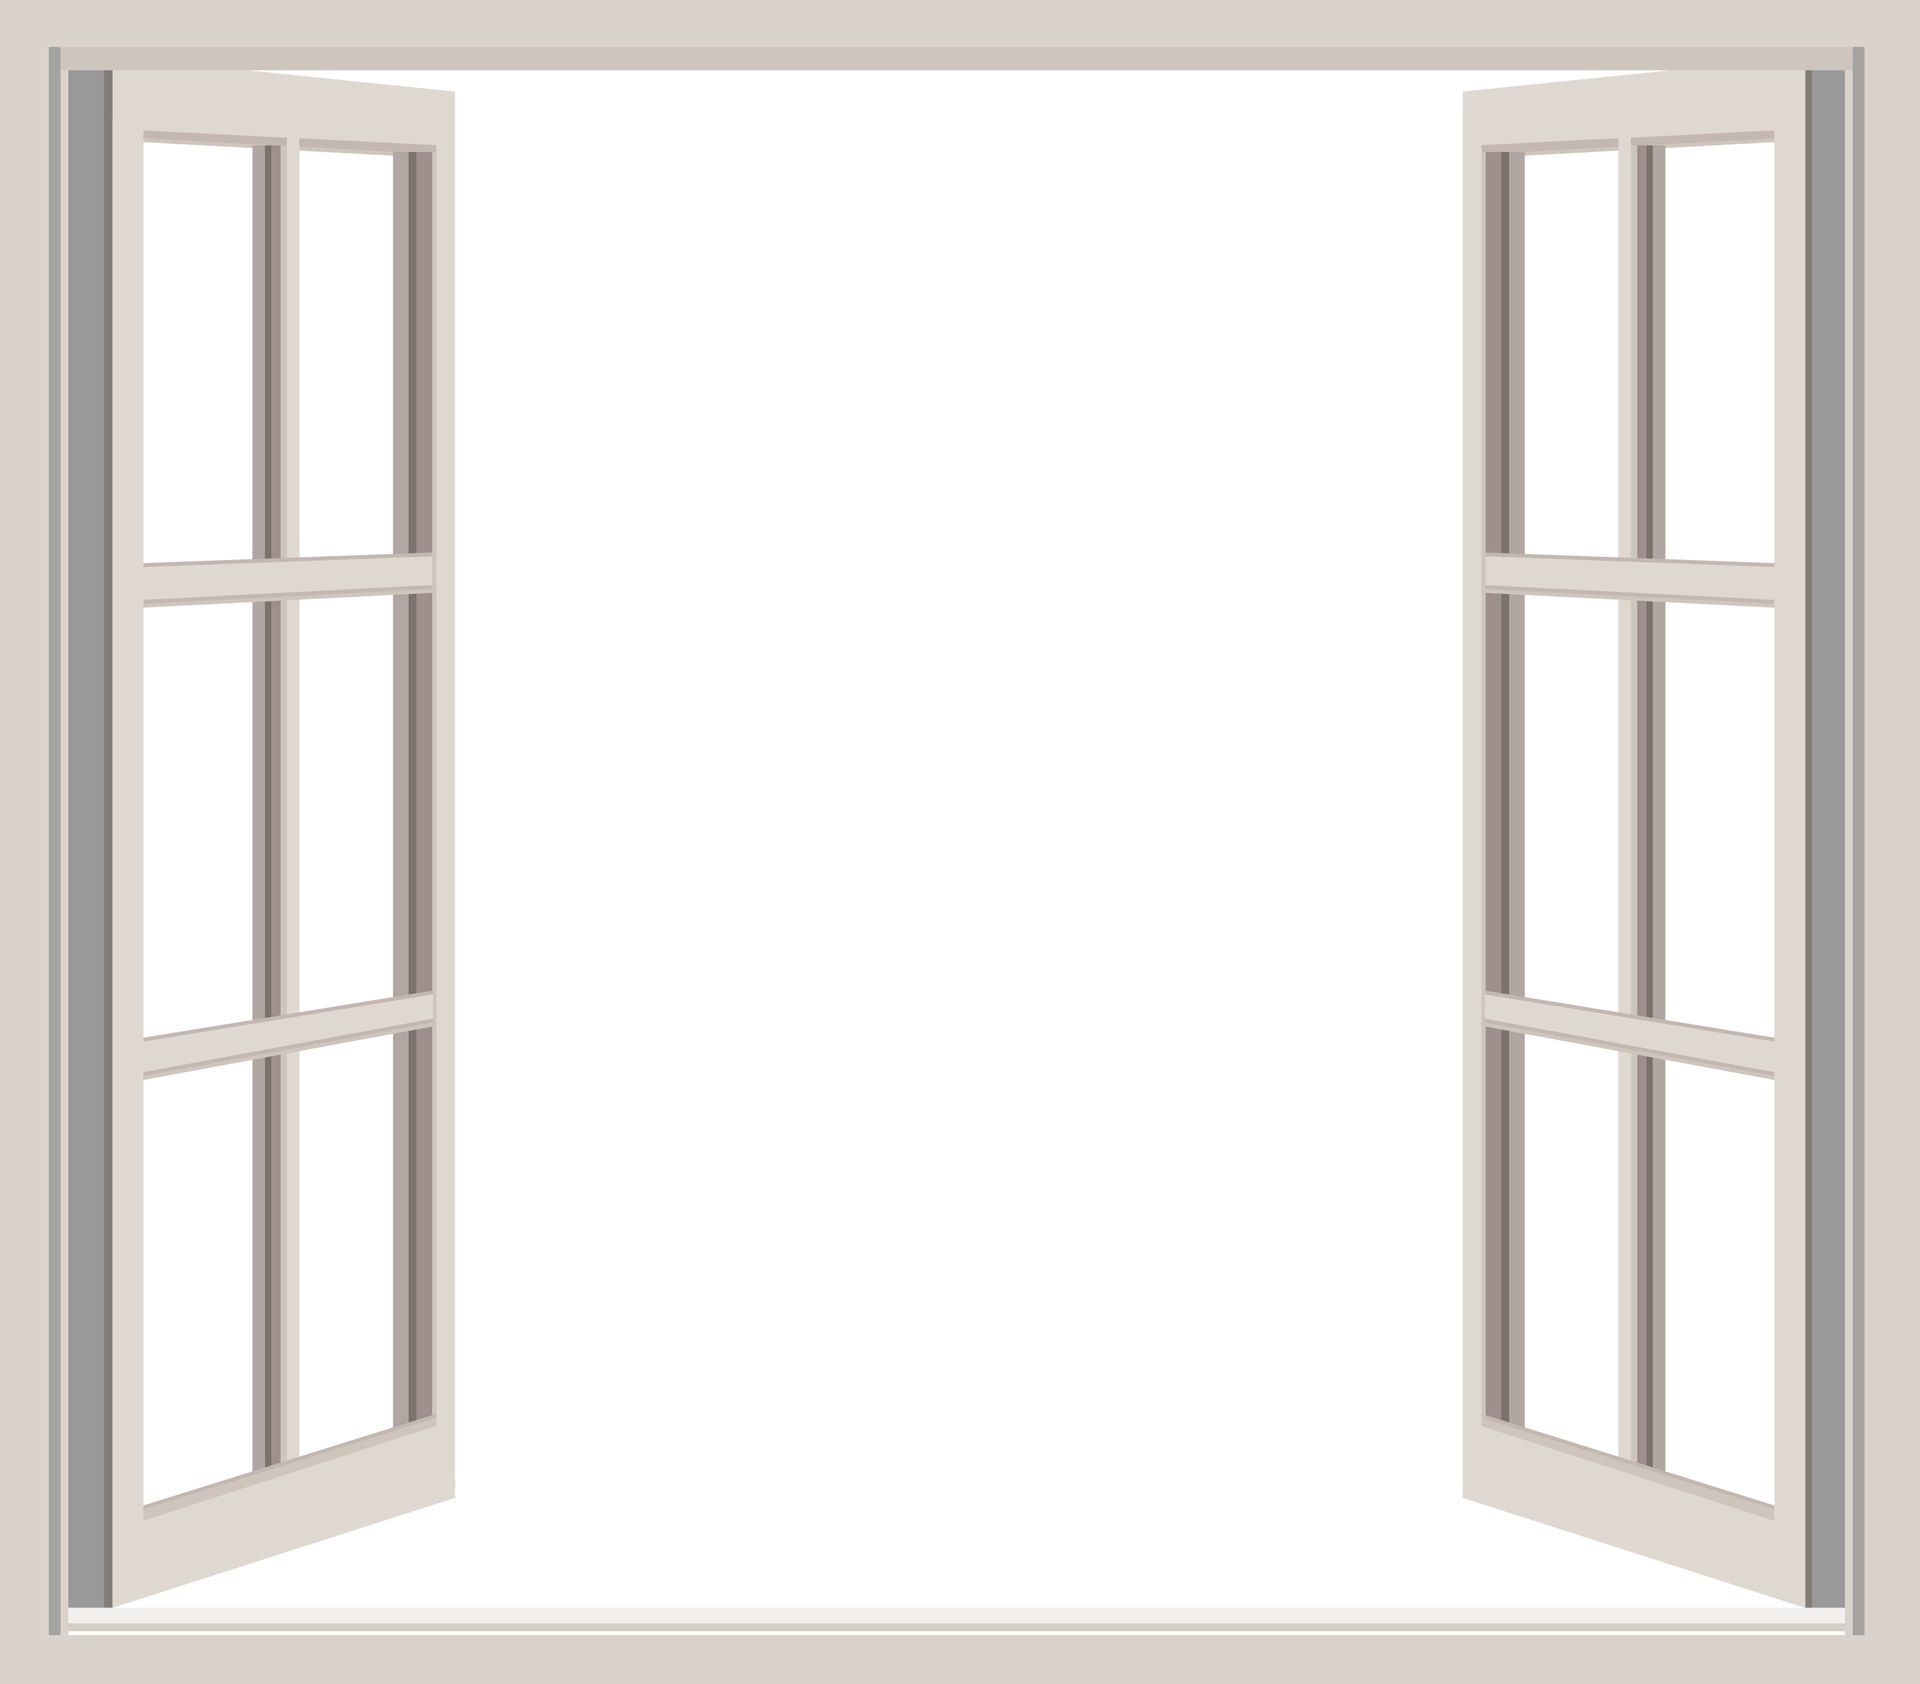 Open Window Frame Clipart Free Stock Photo.